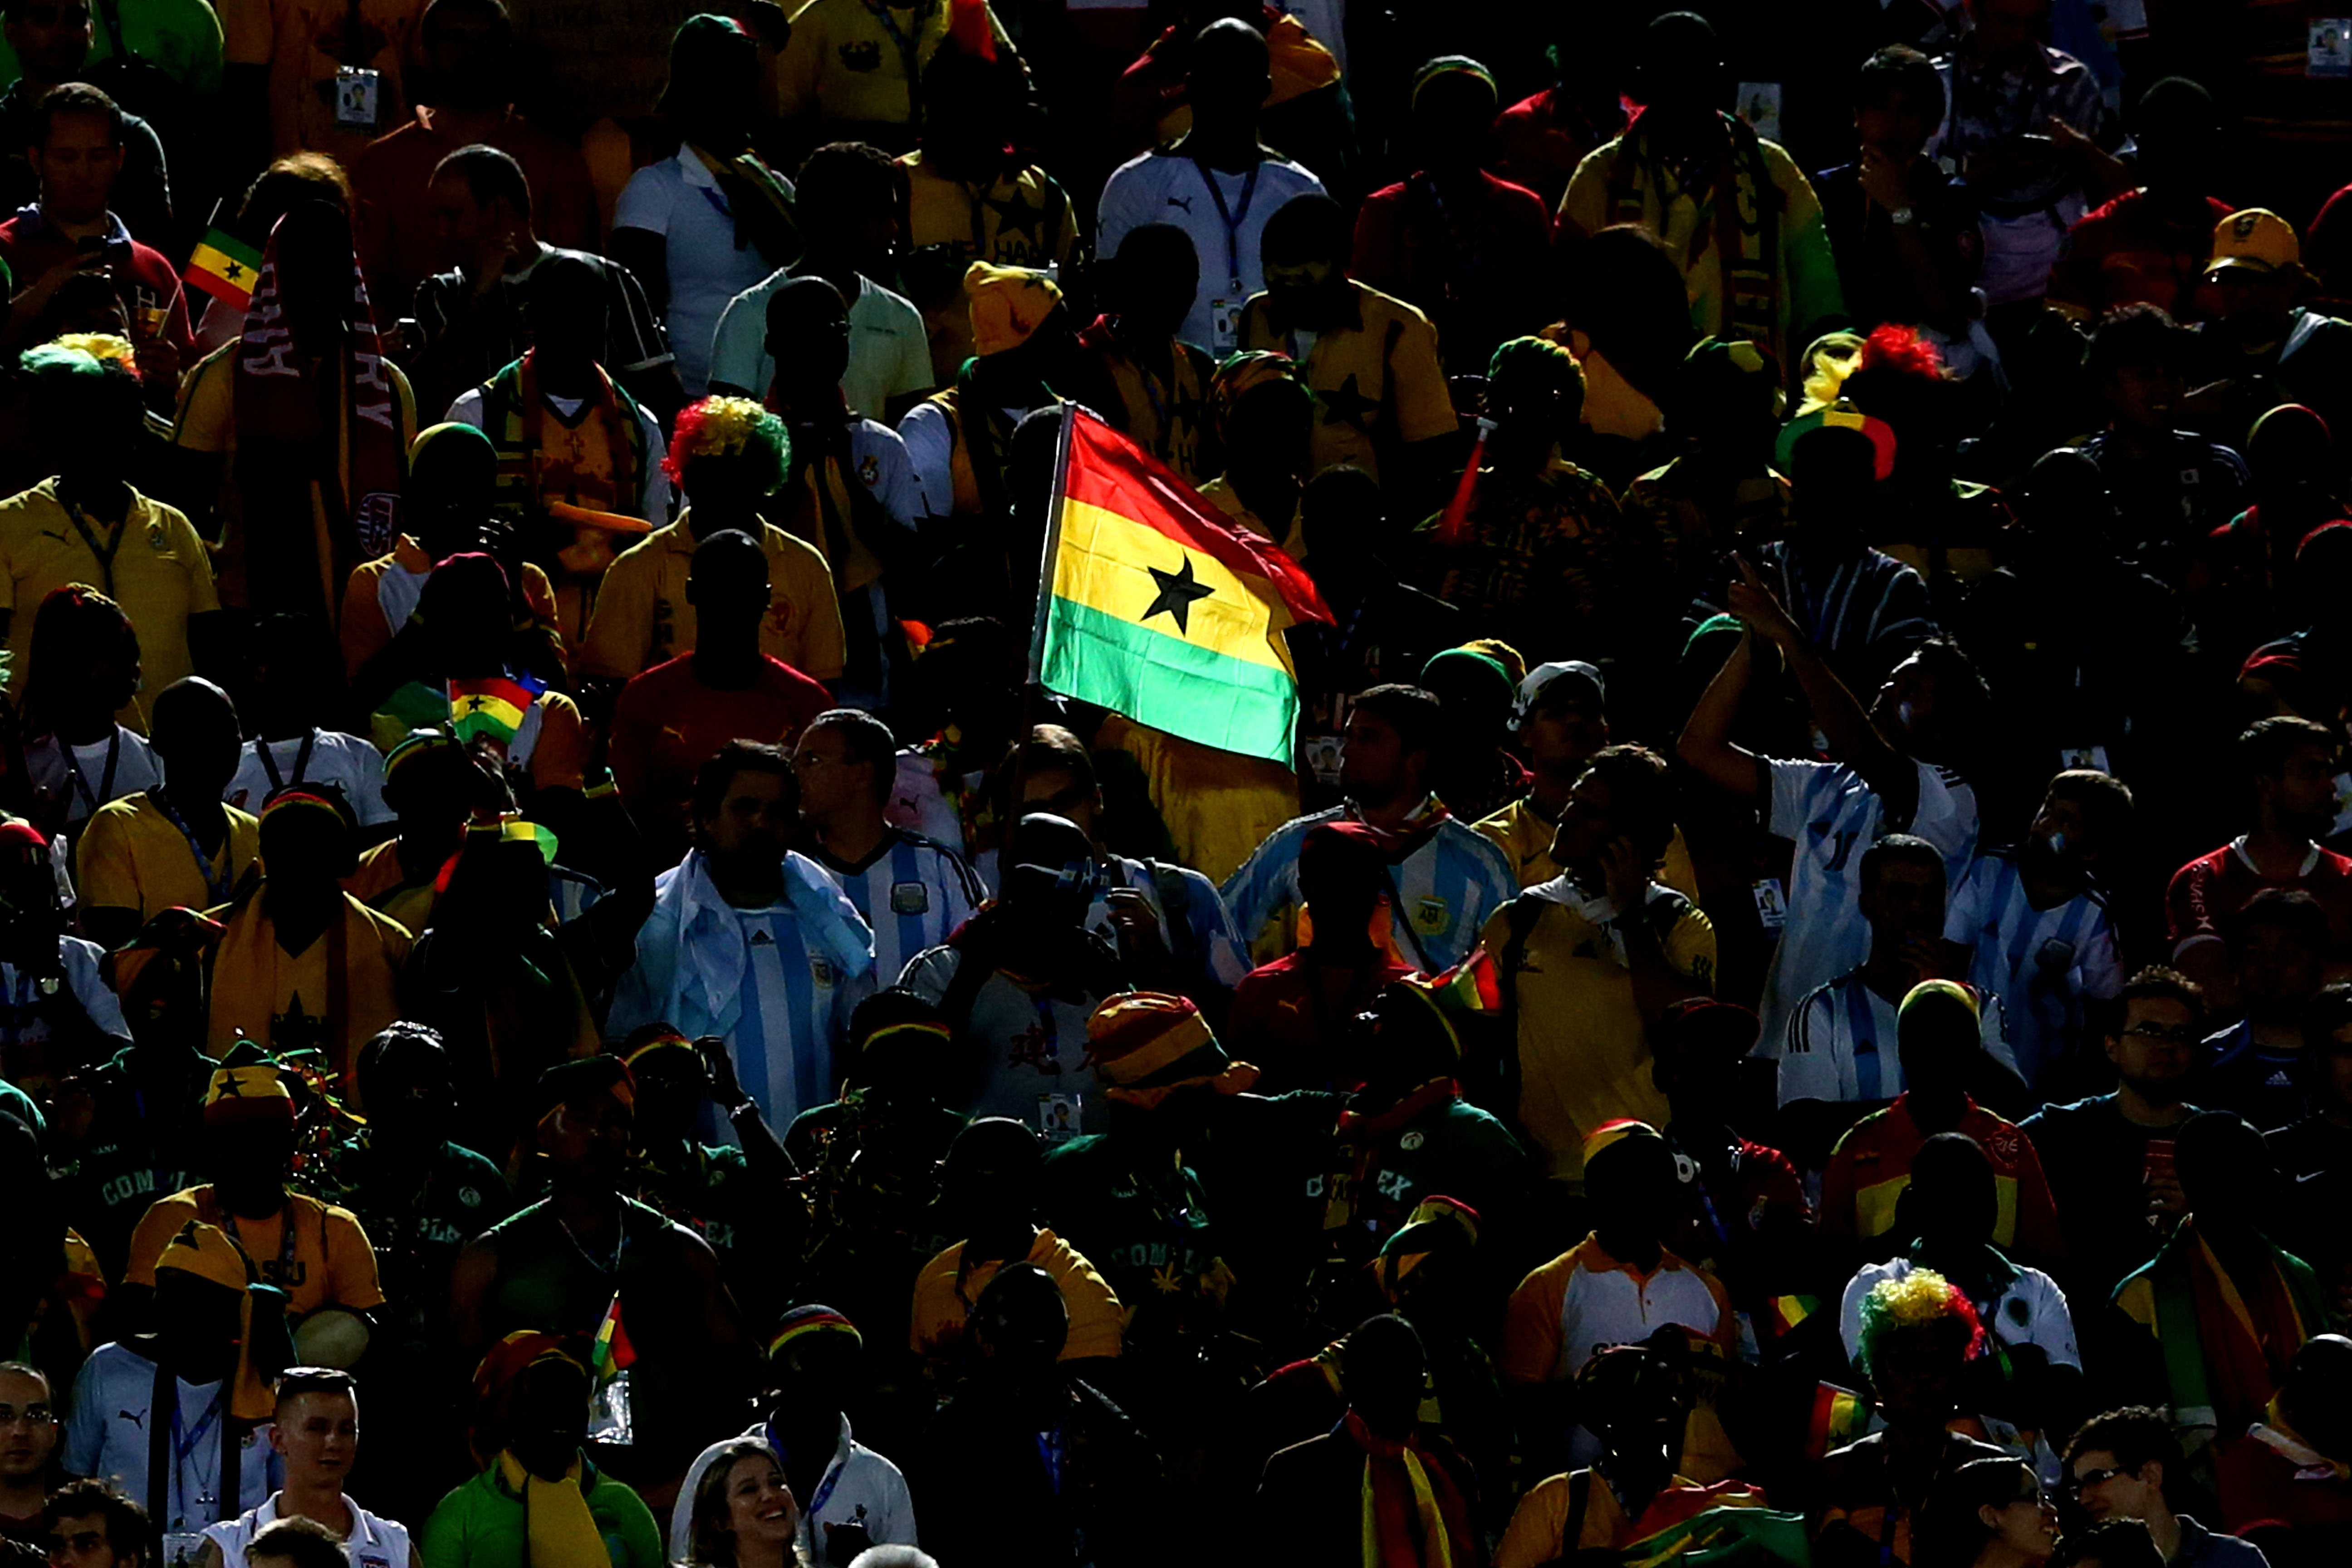 A Ghana flag is seen on the stands during the 2014 FIFA World Cup Brazil Group G match between Ghana and the United States at Estadio das Dunas on June 16, 2014 in Natal, Brazil.